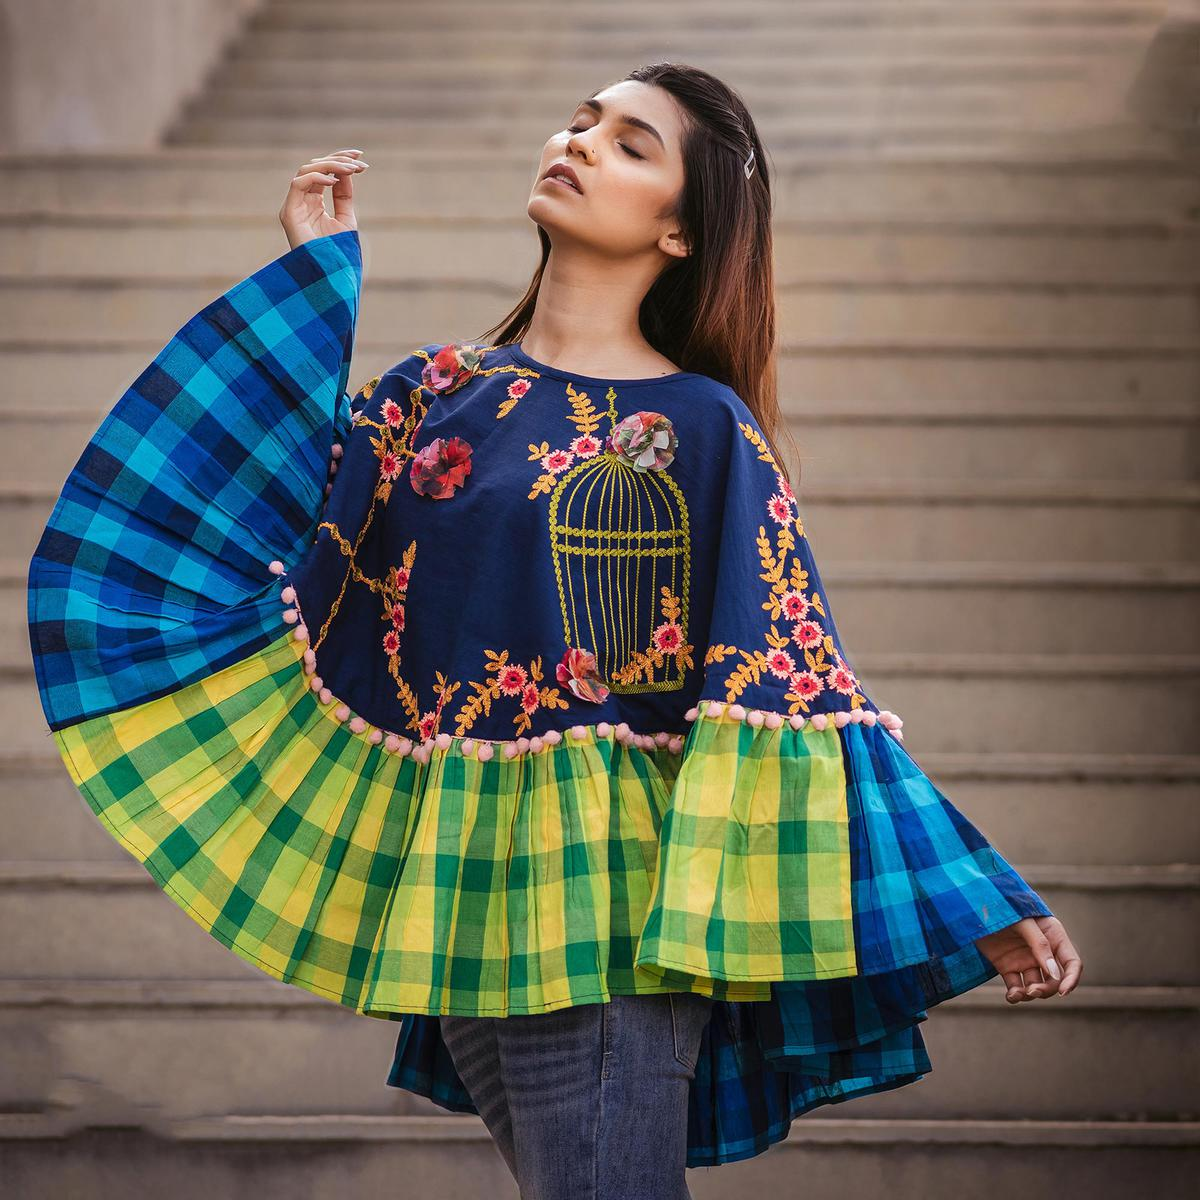 225469d8f6f Buy Desirable Blue   Green Colored Embroidered Khadi Poncho For womens  online India